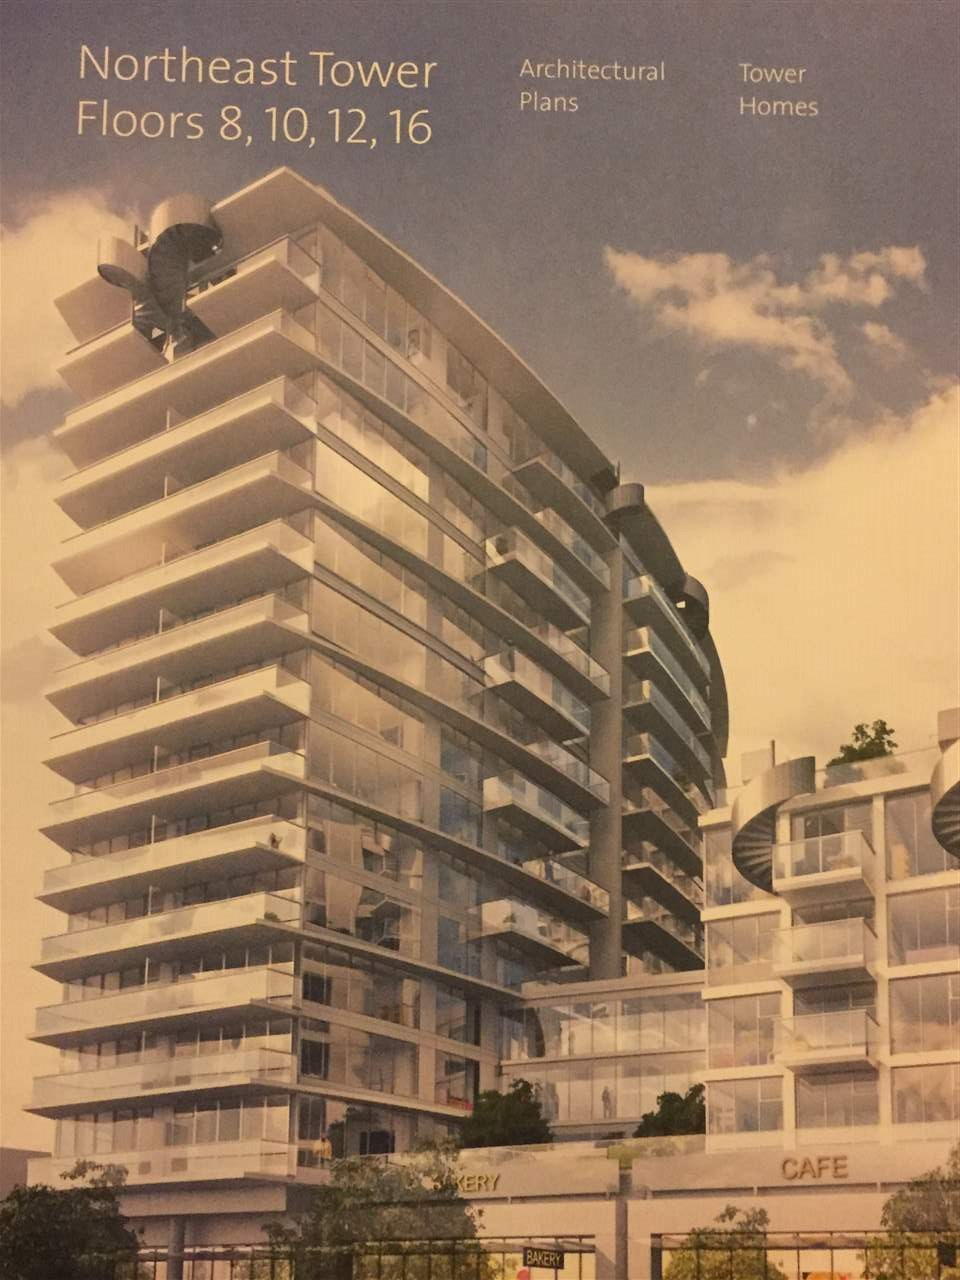 Kensington Garden by Westbank. This 2 bedroom 2 bathroom unit offers spacious living area. High end appliances, H/W floors and much more. Assignment of contract. Buy into this hot community before it is too late.